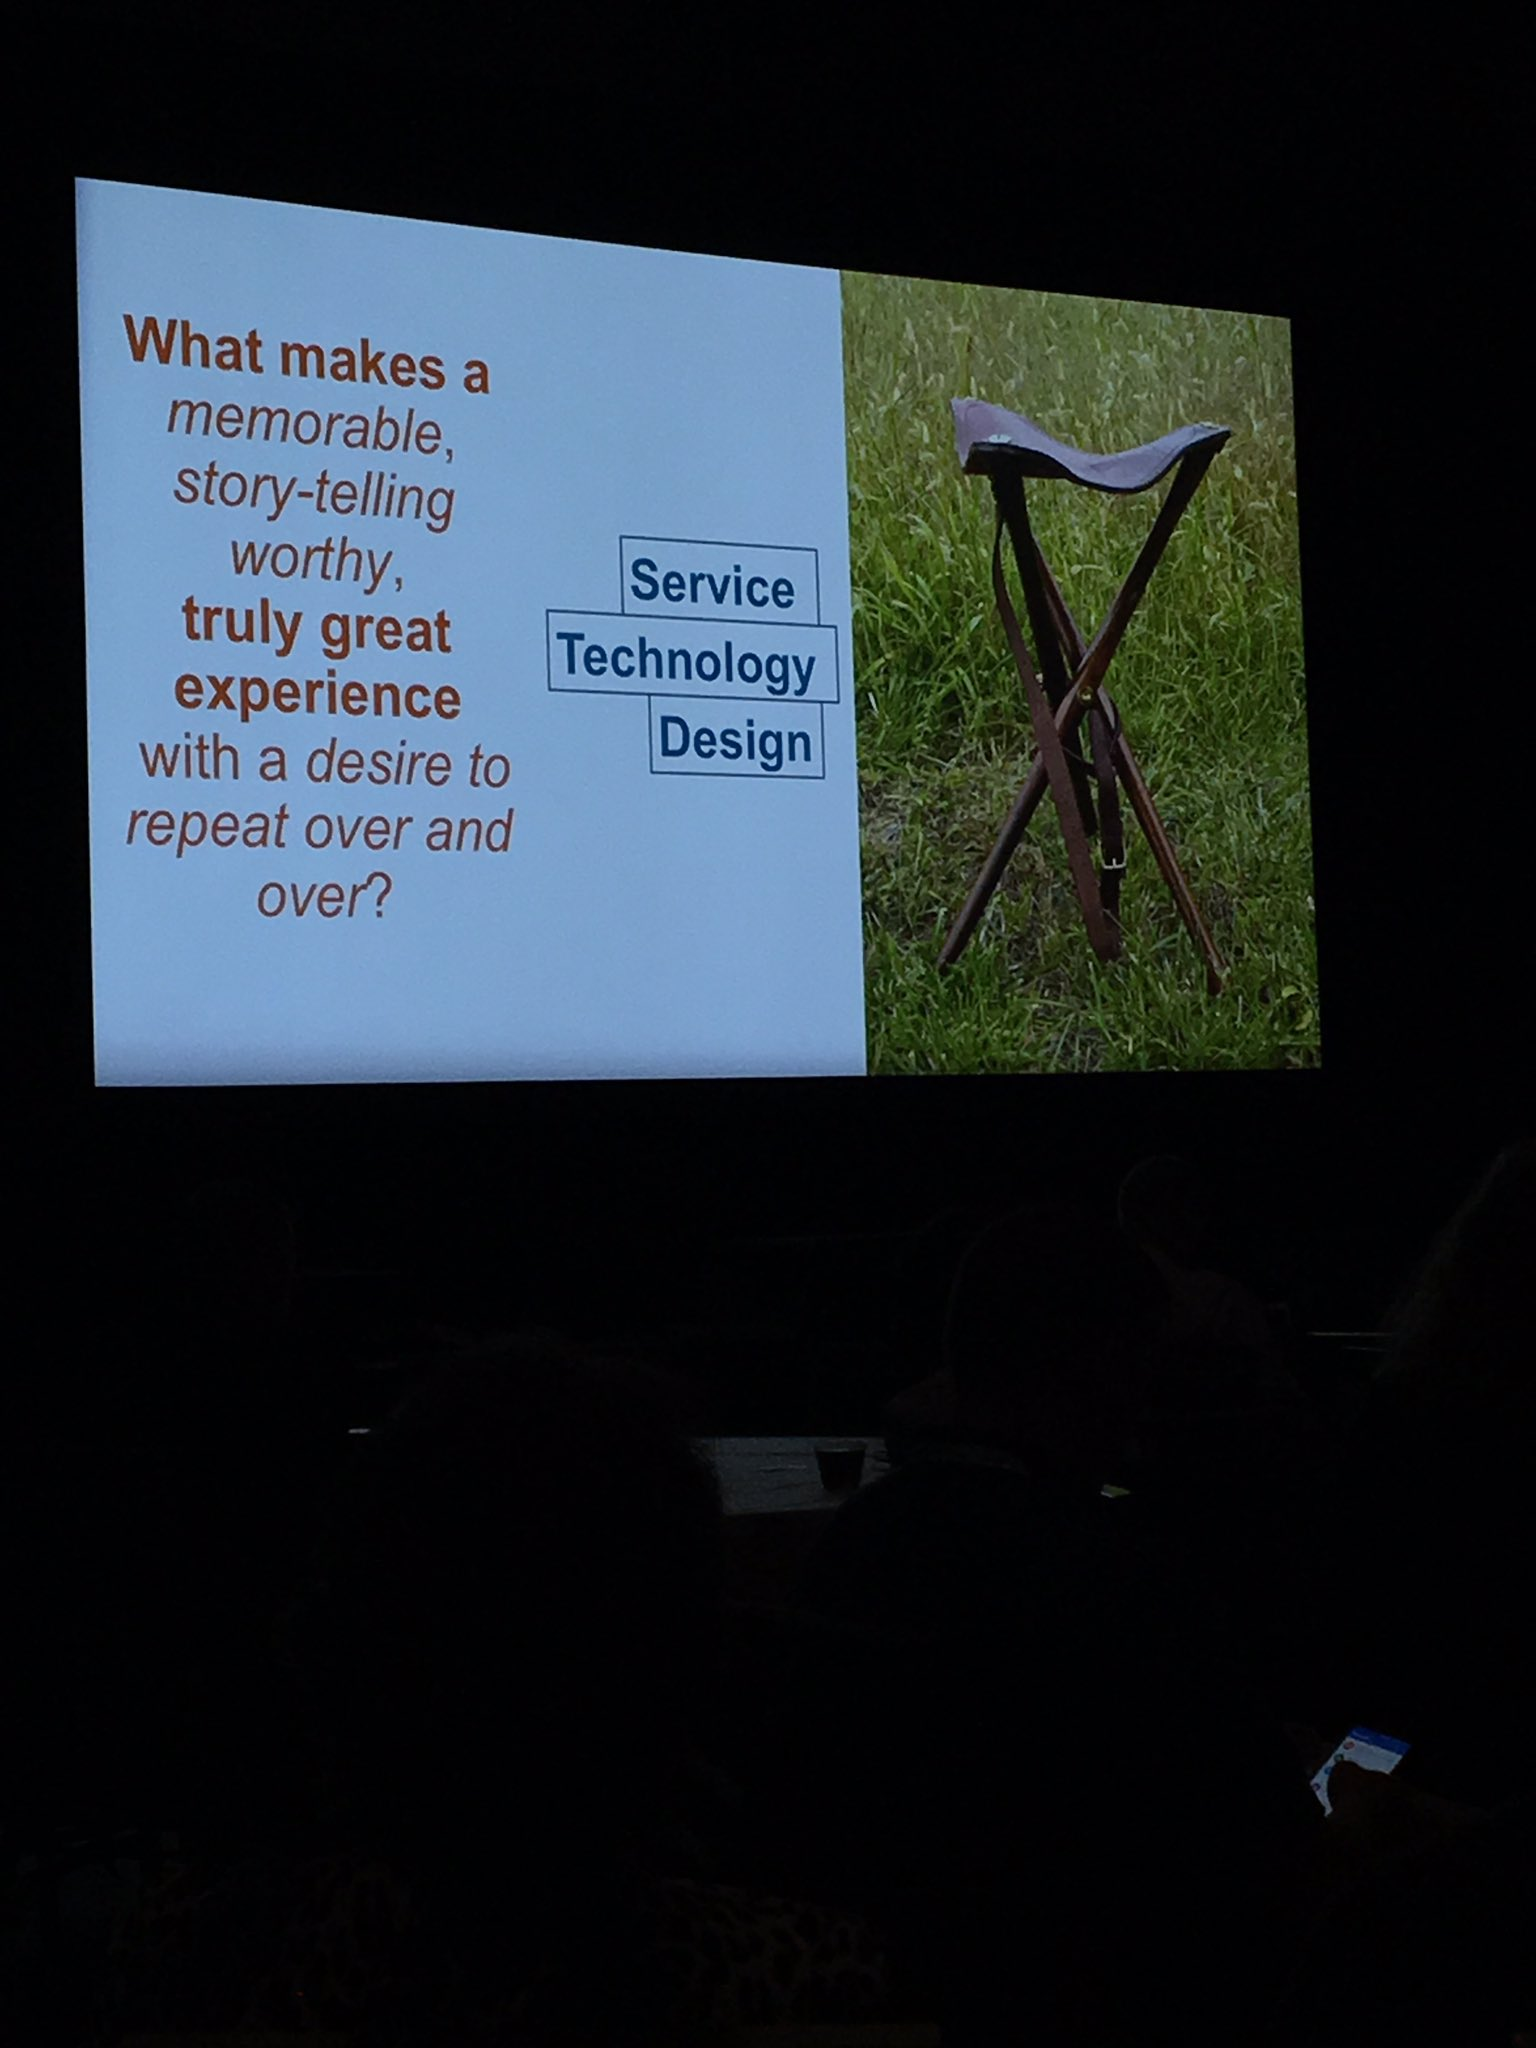 Service, technology, and design have to work together to truly create great experiences #A2OPTIMIZE https://t.co/Tn46DPD8dx